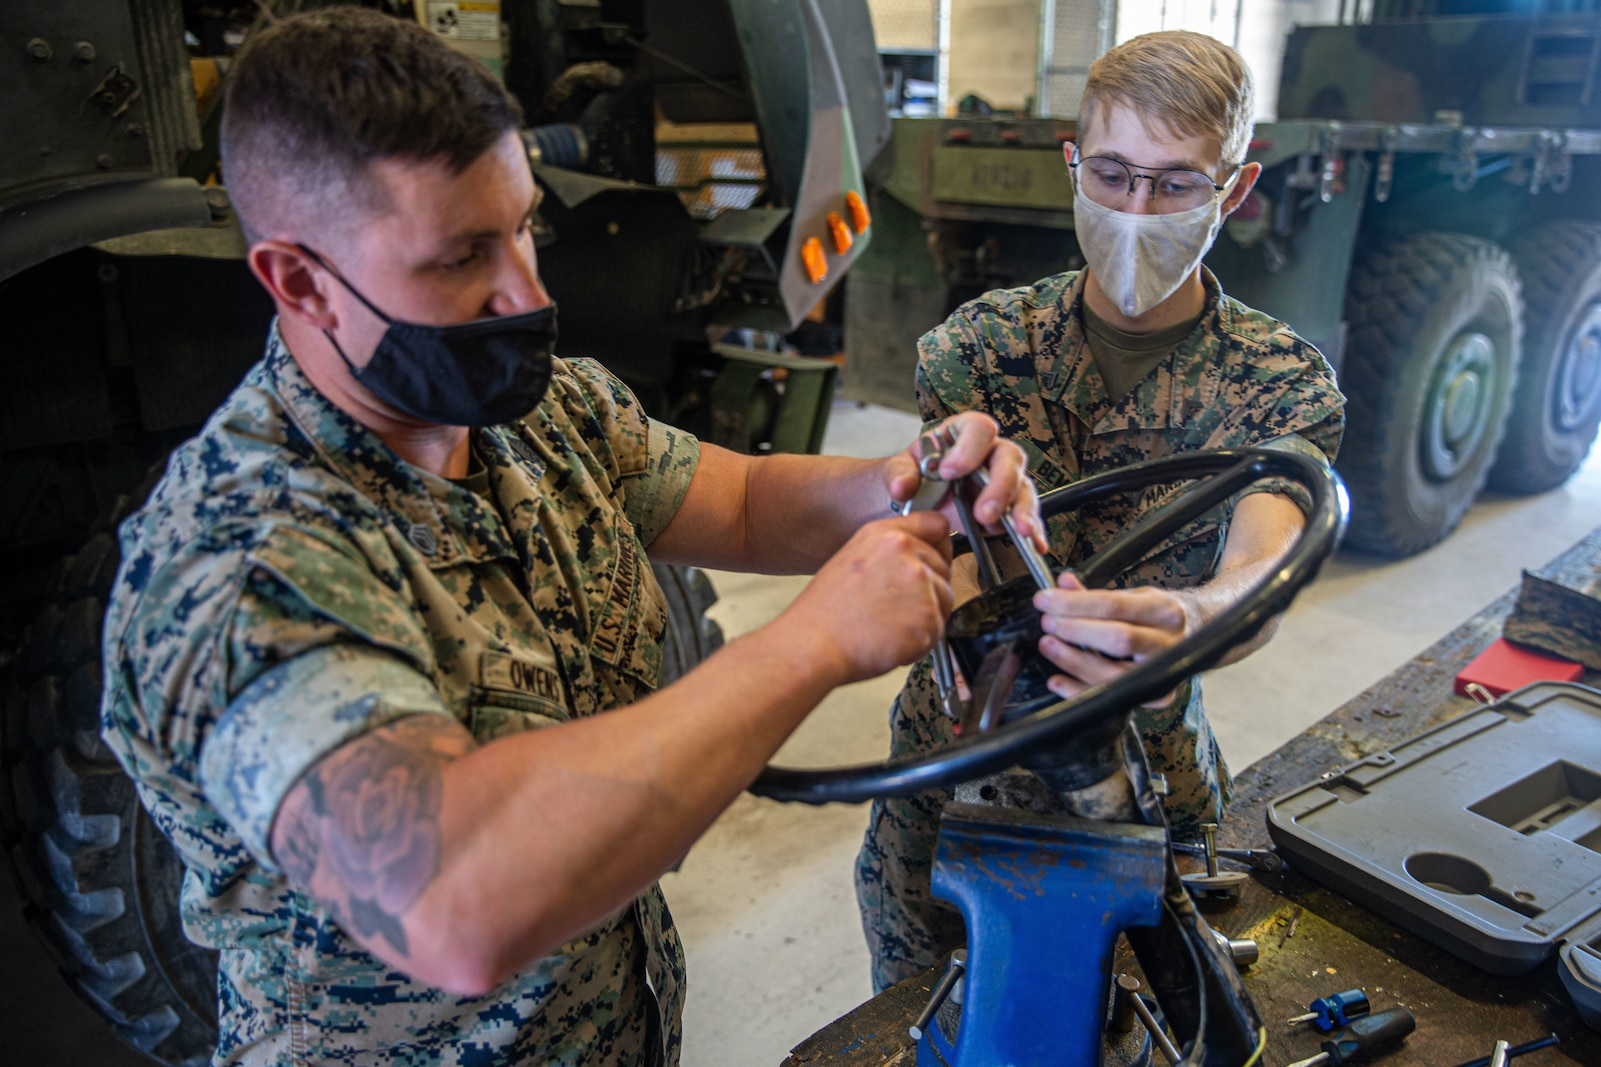 Cpl. Aiden Bemis,(right) a digital manufacturing engineer with 1st Supply Battalion, and Staff Sgt. Kyle Owens, (left) a motor transportation chief with Combat Logistics Battalion 5, demonstrate the old method of removing a steering wheel from the column using a 10-way slide hammer kit.